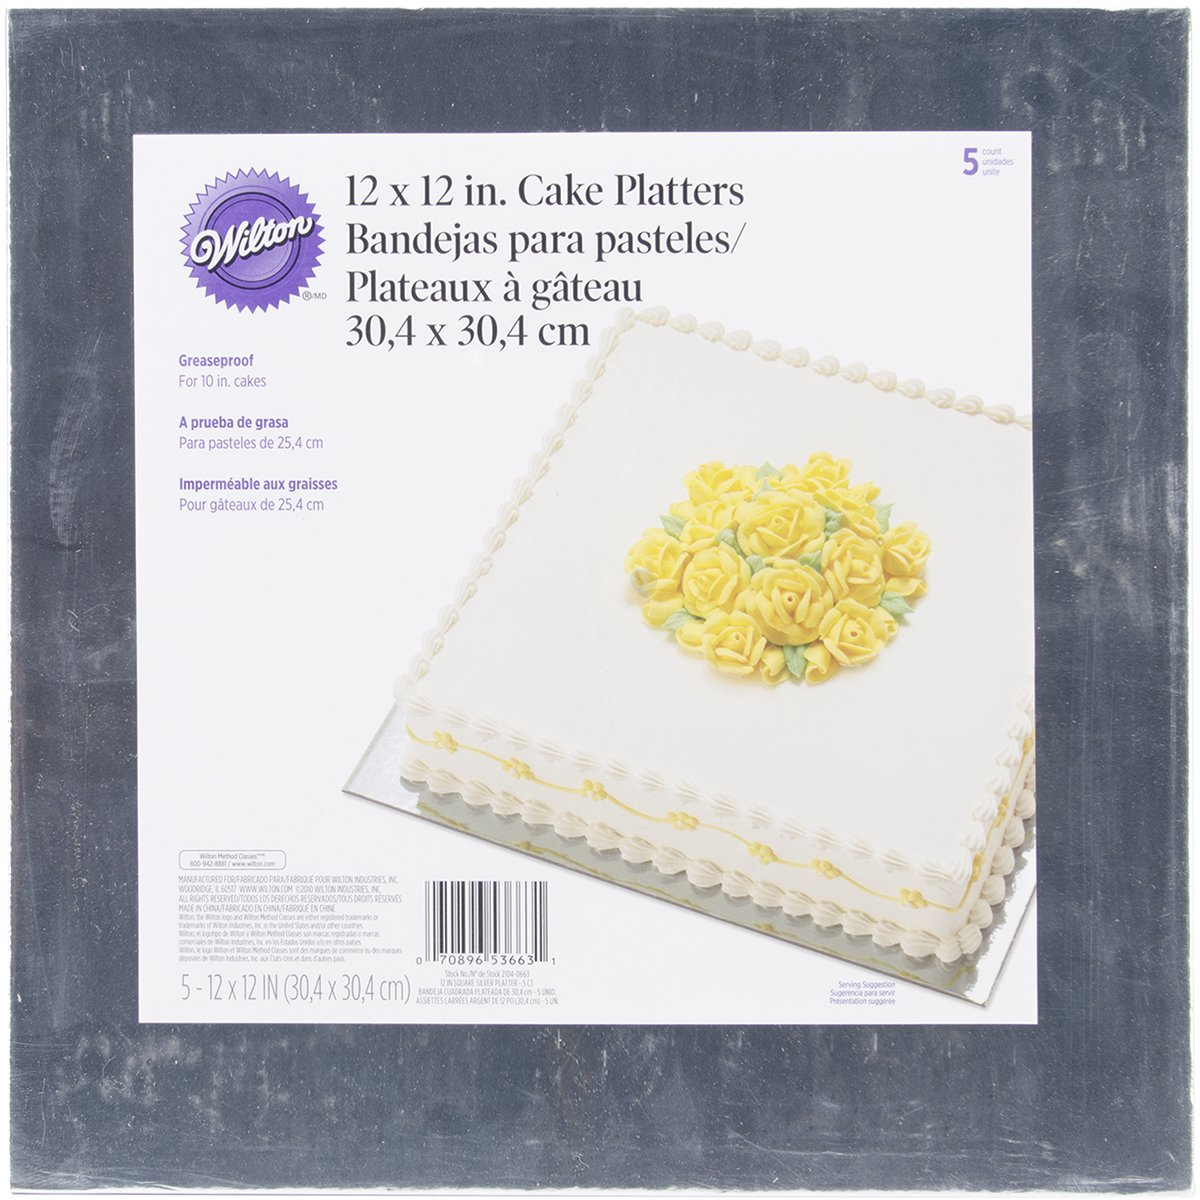 Wilton Silver 12-Inch Square Cake Platters, 5 Count 2104-0663